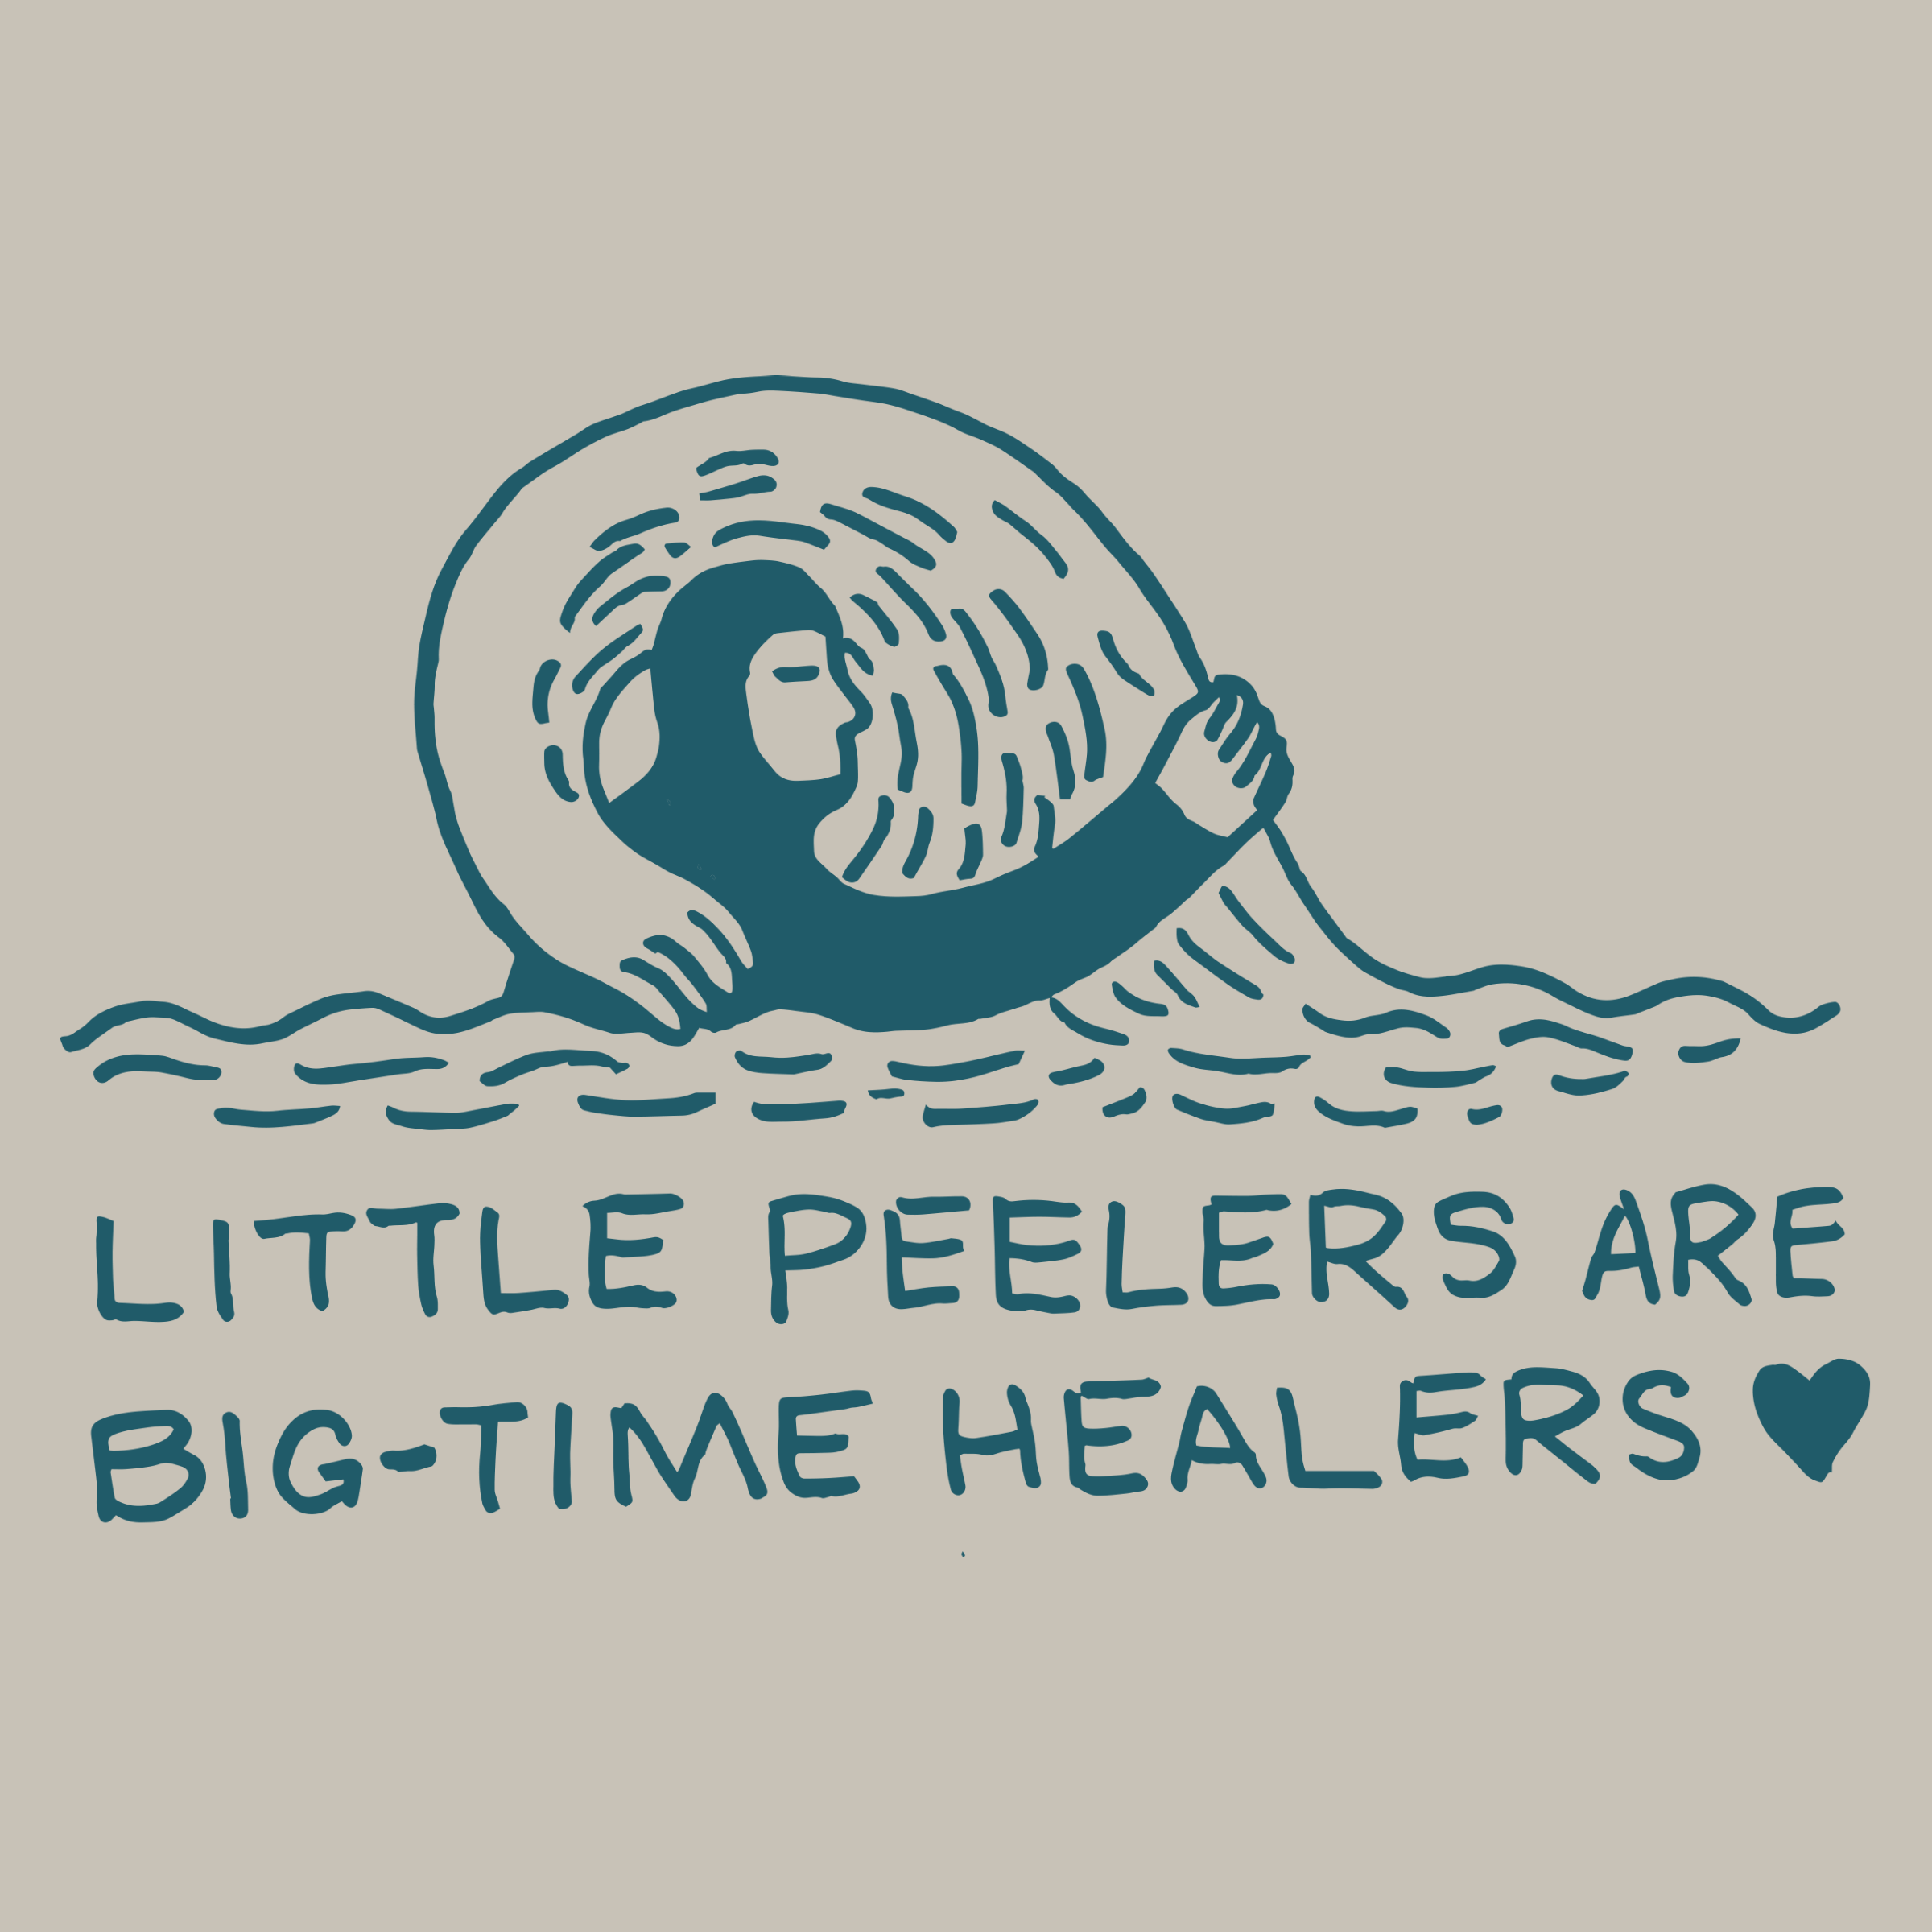 Little Peelers are Big-time Healers